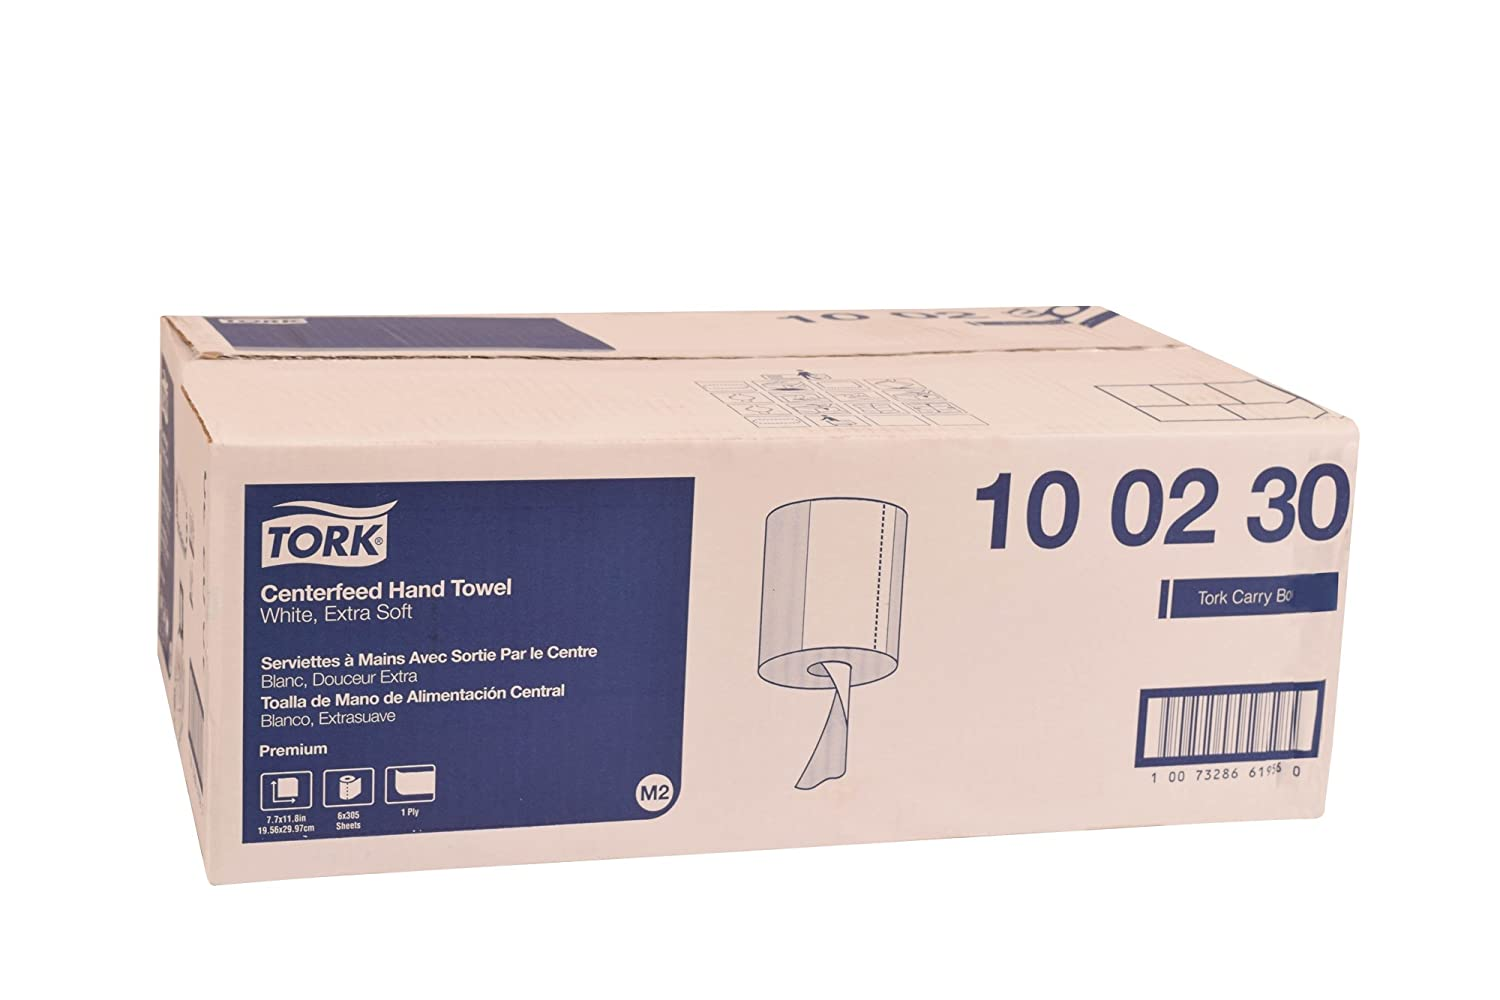 Tork 100230 Premium Extra Soft Centerfeed Hand Towel, 1-Ply, 7.7